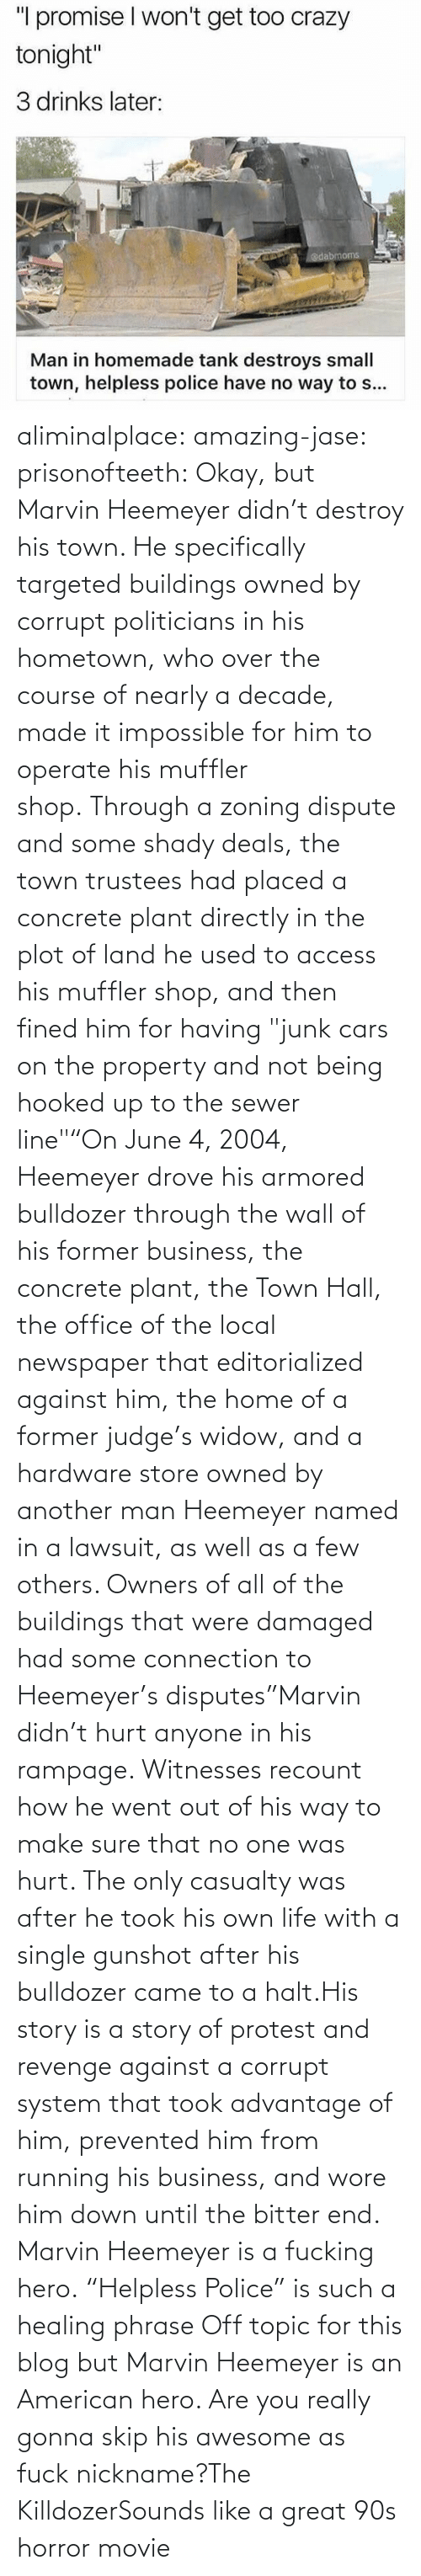 "as well: aliminalplace: amazing-jase:  prisonofteeth: Okay, but Marvin Heemeyer didn't destroy his town. He specifically targeted buildings owned by corrupt politicians in his hometown, who over the course of nearly a decade, made it impossible for him to operate his muffler shop. Through a zoning dispute and some shady deals, the town trustees had placed a concrete plant directly in the plot of land he used to access his muffler shop, and then fined him for having ""junk cars on the property and not being hooked up to the sewer line""""On June 4, 2004, Heemeyer drove his armored bulldozer through the wall of his former business, the concrete plant, the Town Hall, the office of the local newspaper that editorialized against him, the home of a former judge's widow, and a hardware store owned by another man Heemeyer named in a lawsuit, as well as a few others. Owners of all of the buildings that were damaged had some connection to Heemeyer's disputes""Marvin didn't hurt anyone in his rampage. Witnesses recount how he went out of his way to make sure that no one was hurt. The only casualty was after he took his own life with a single gunshot after his bulldozer came to a halt.His story is a story of protest and revenge against a corrupt system that took advantage of him, prevented him from running his business, and wore him down until the bitter end. Marvin Heemeyer is a fucking hero. ""Helpless Police"" is such a healing phrase    Off topic for this blog but Marvin Heemeyer is an American hero.     Are you really gonna skip his awesome as fuck nickname?The KilldozerSounds like a great 90s horror movie"